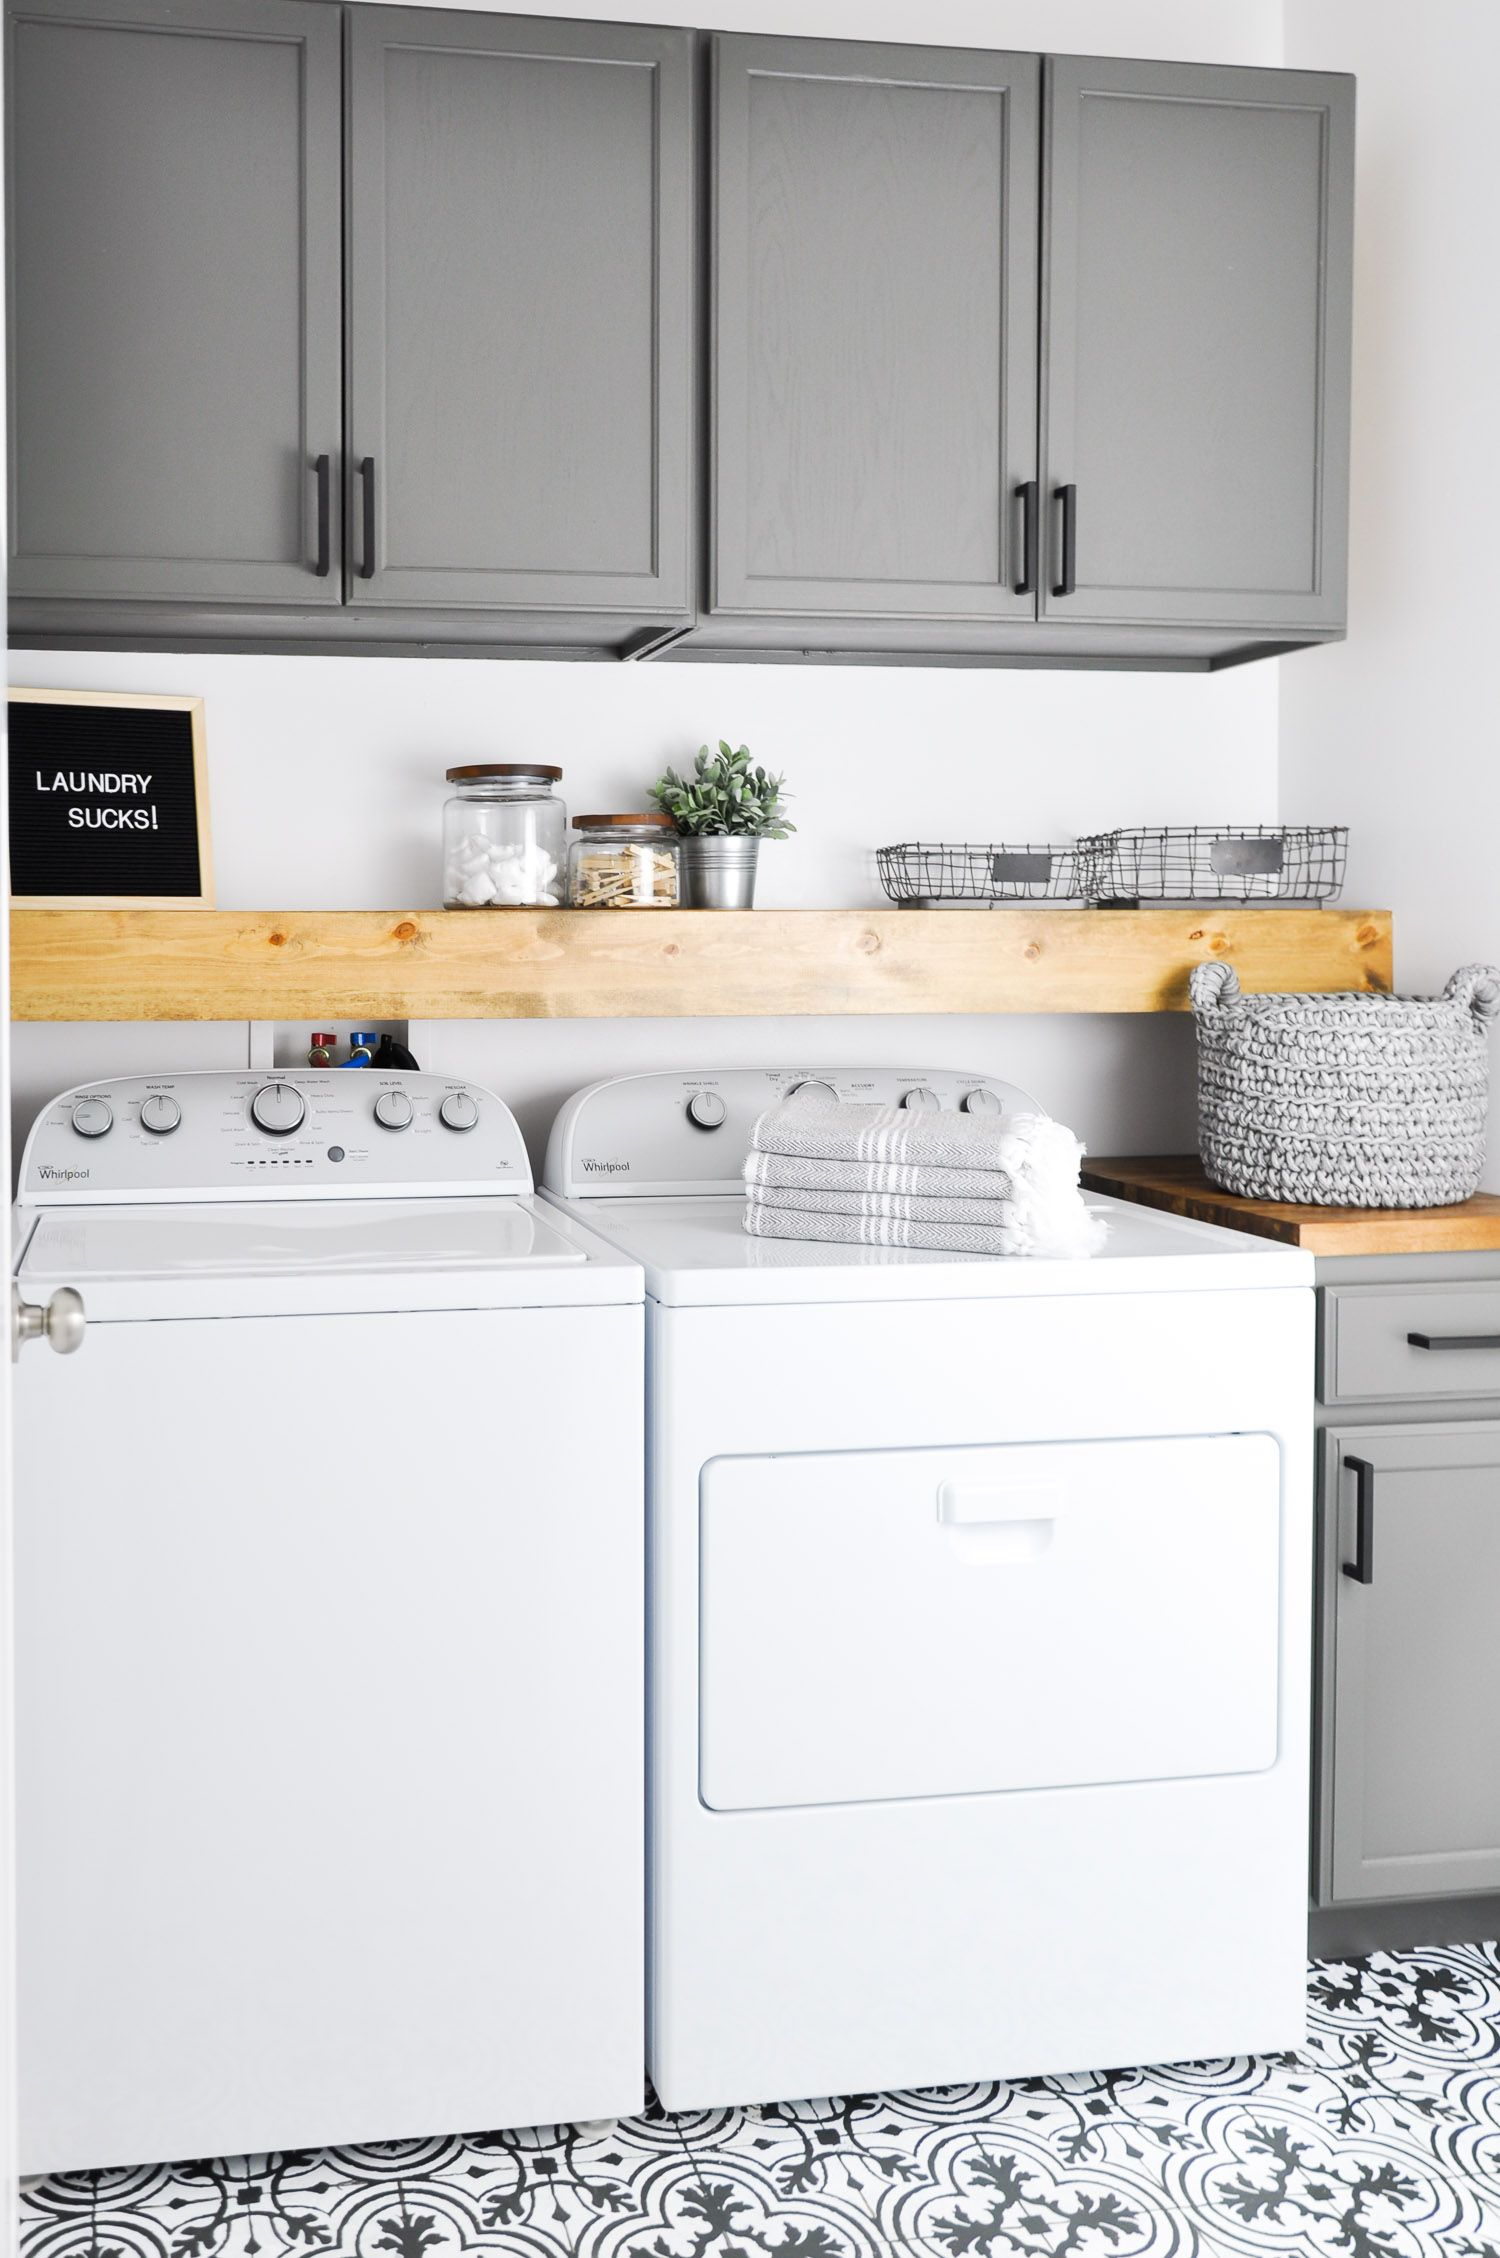 Laundry room pretty little laundry rooms pinterest farmhouse